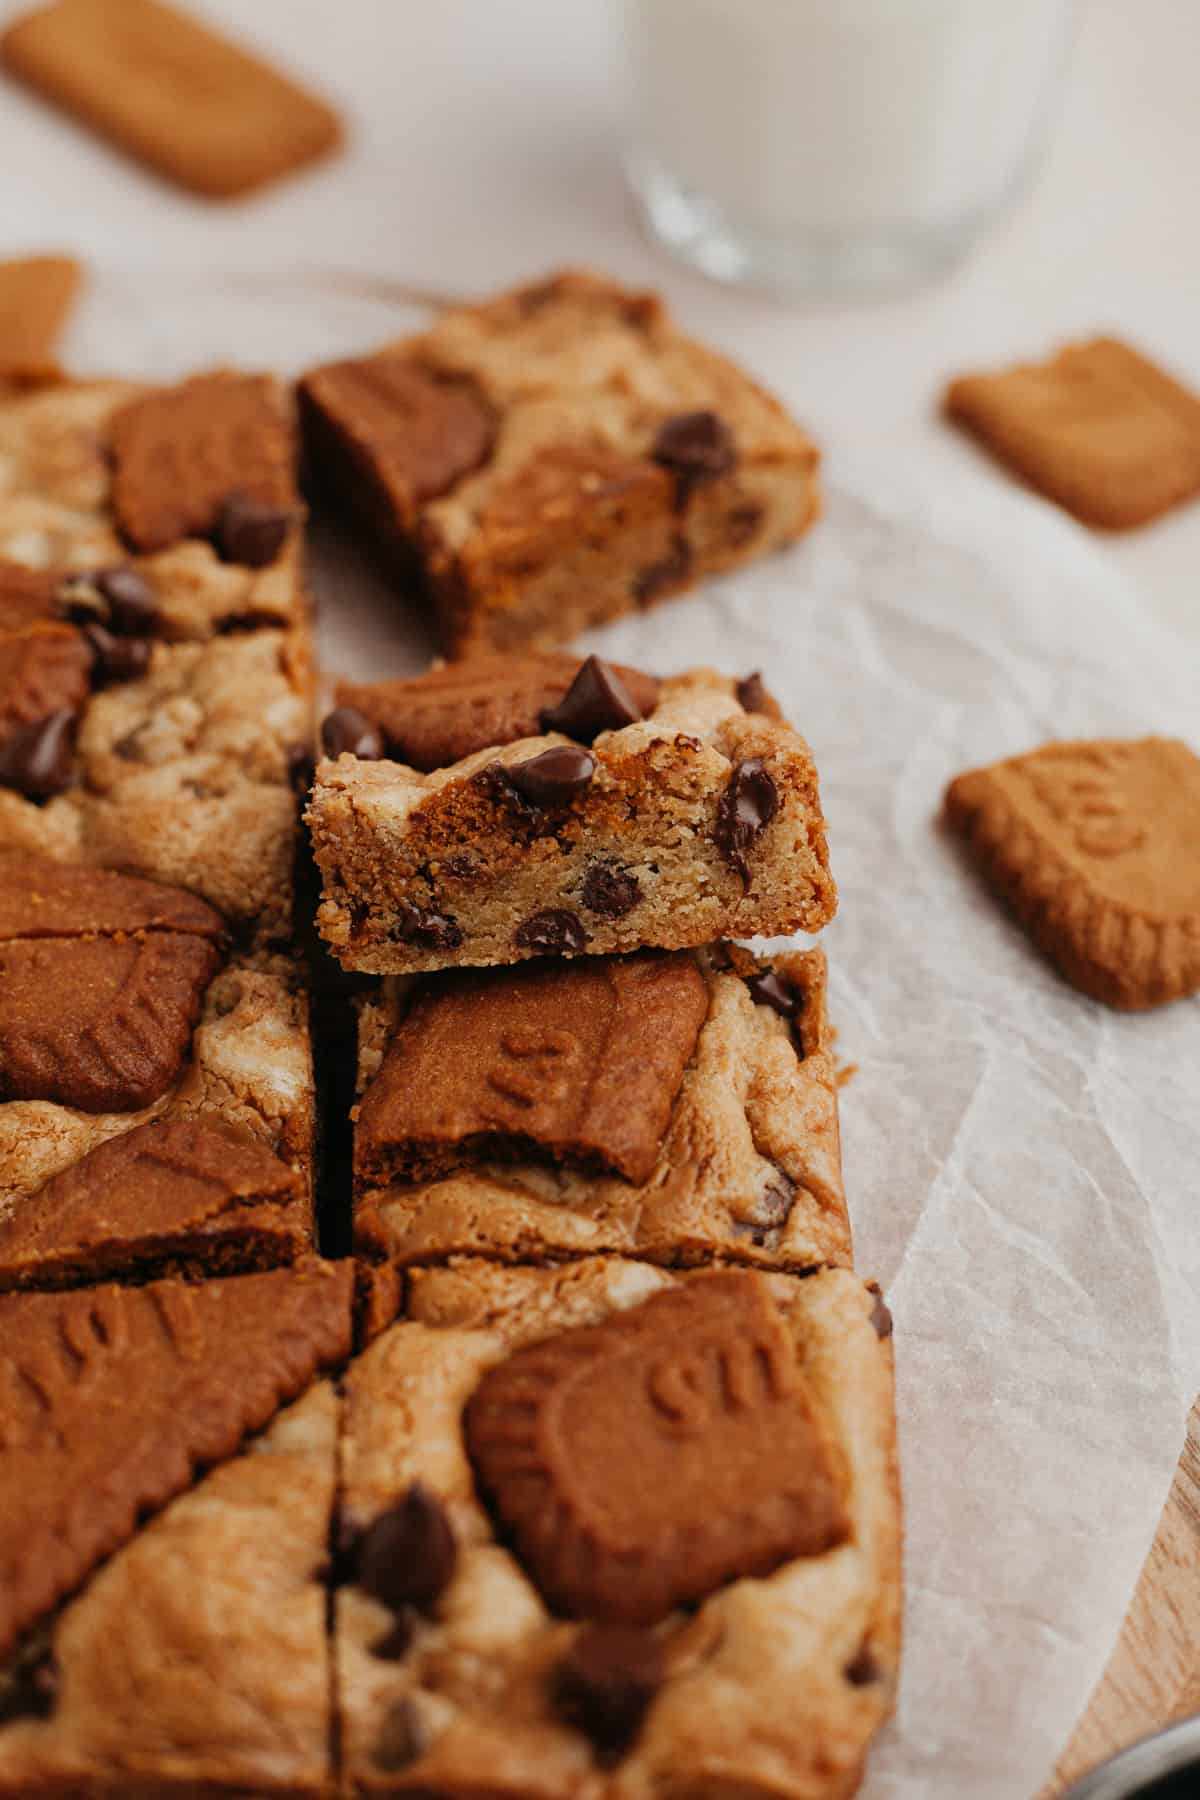 chocolate chip cookie butter blondies slices on parchment paper. One has been angled upwards so you can see a cross section of the bar.